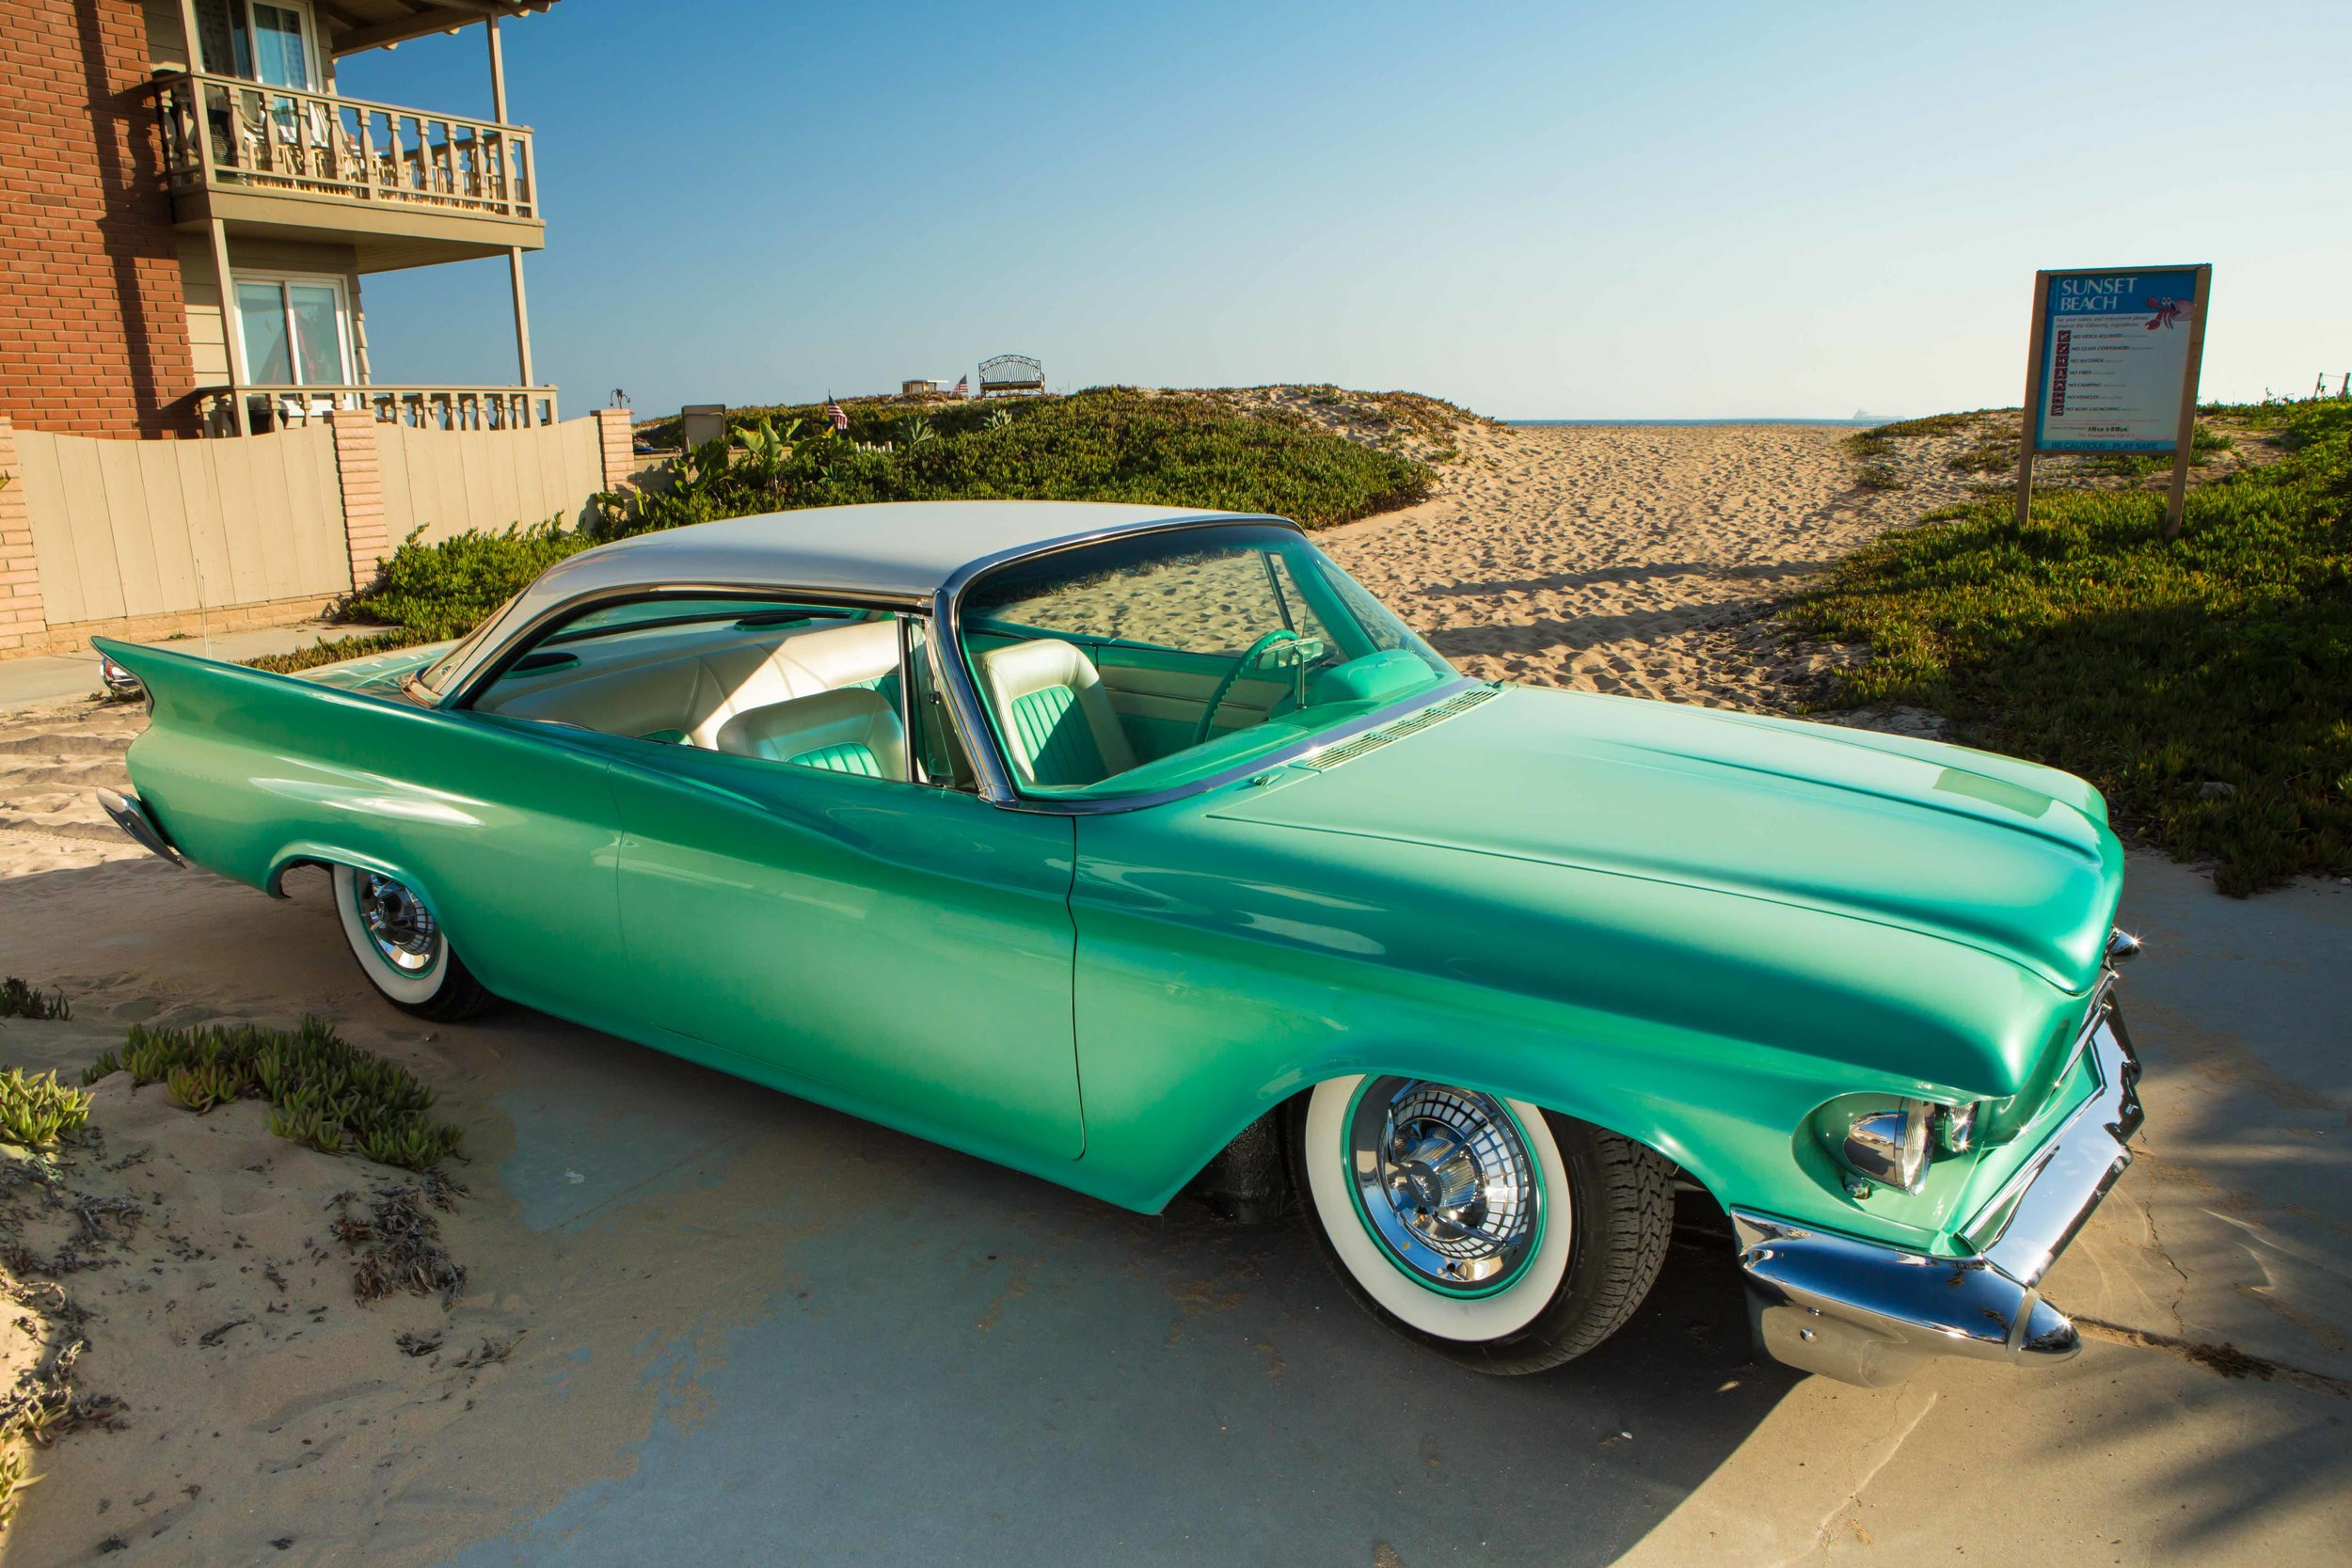 Anaheim Rod and Custom Island Girl 1960 De Soto (1 of 1)-16.jpg